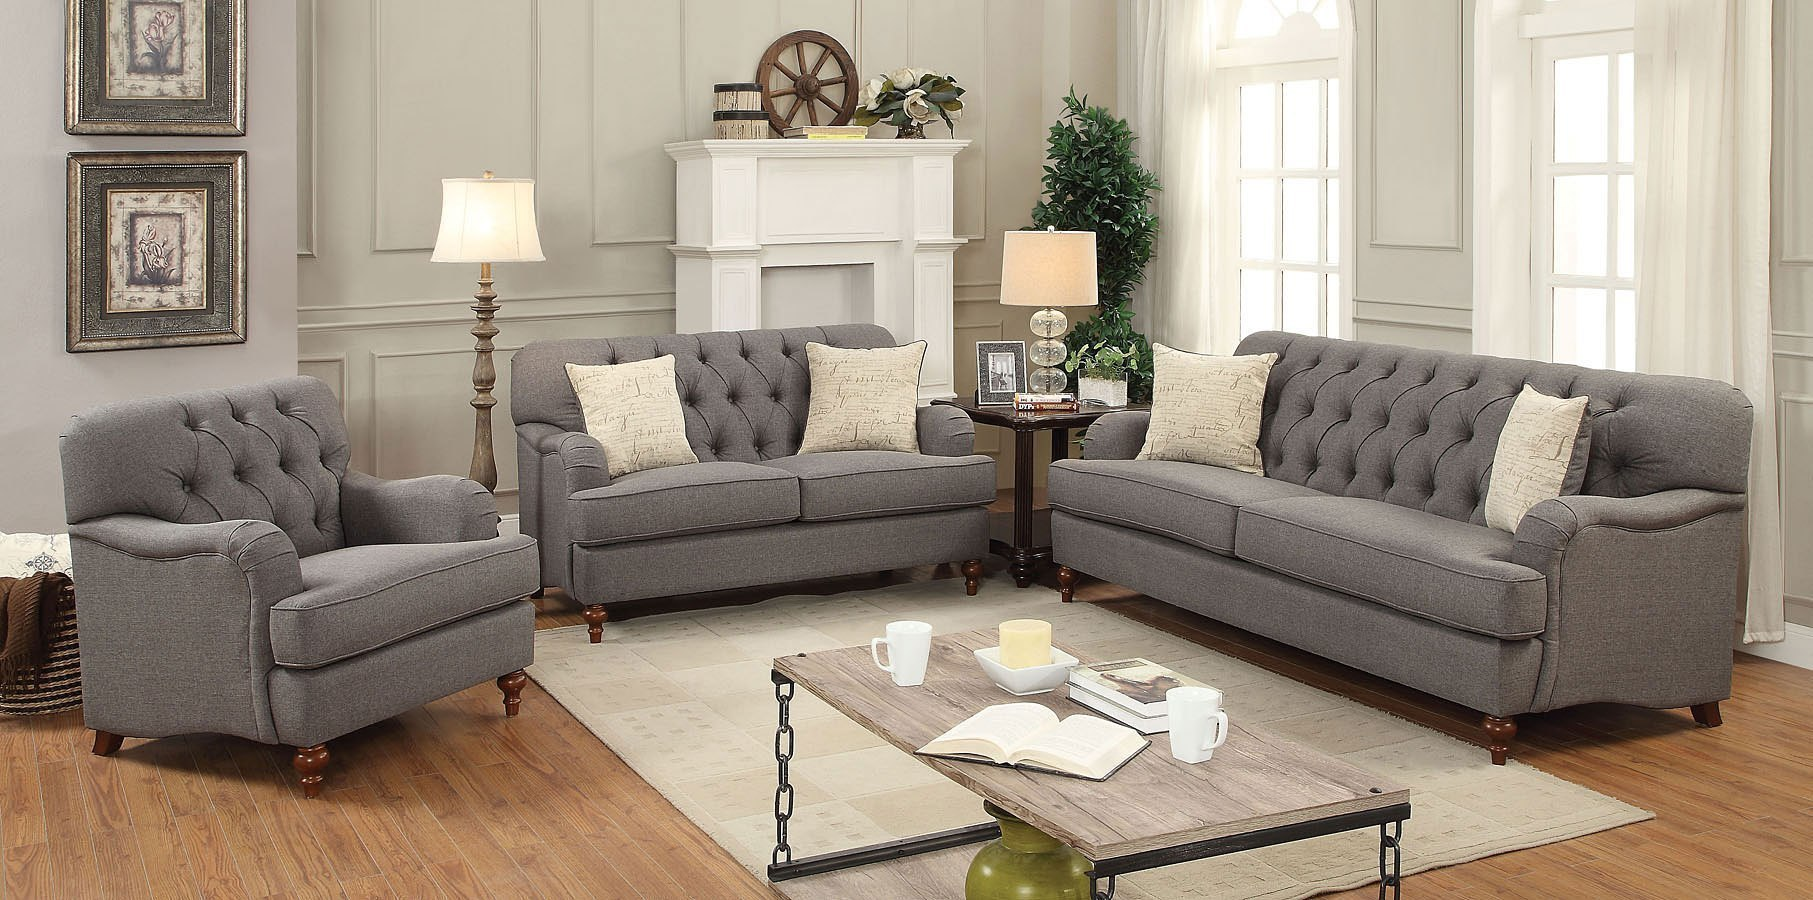 Alianza Living Room Set Dark Gray By Acme Furniture